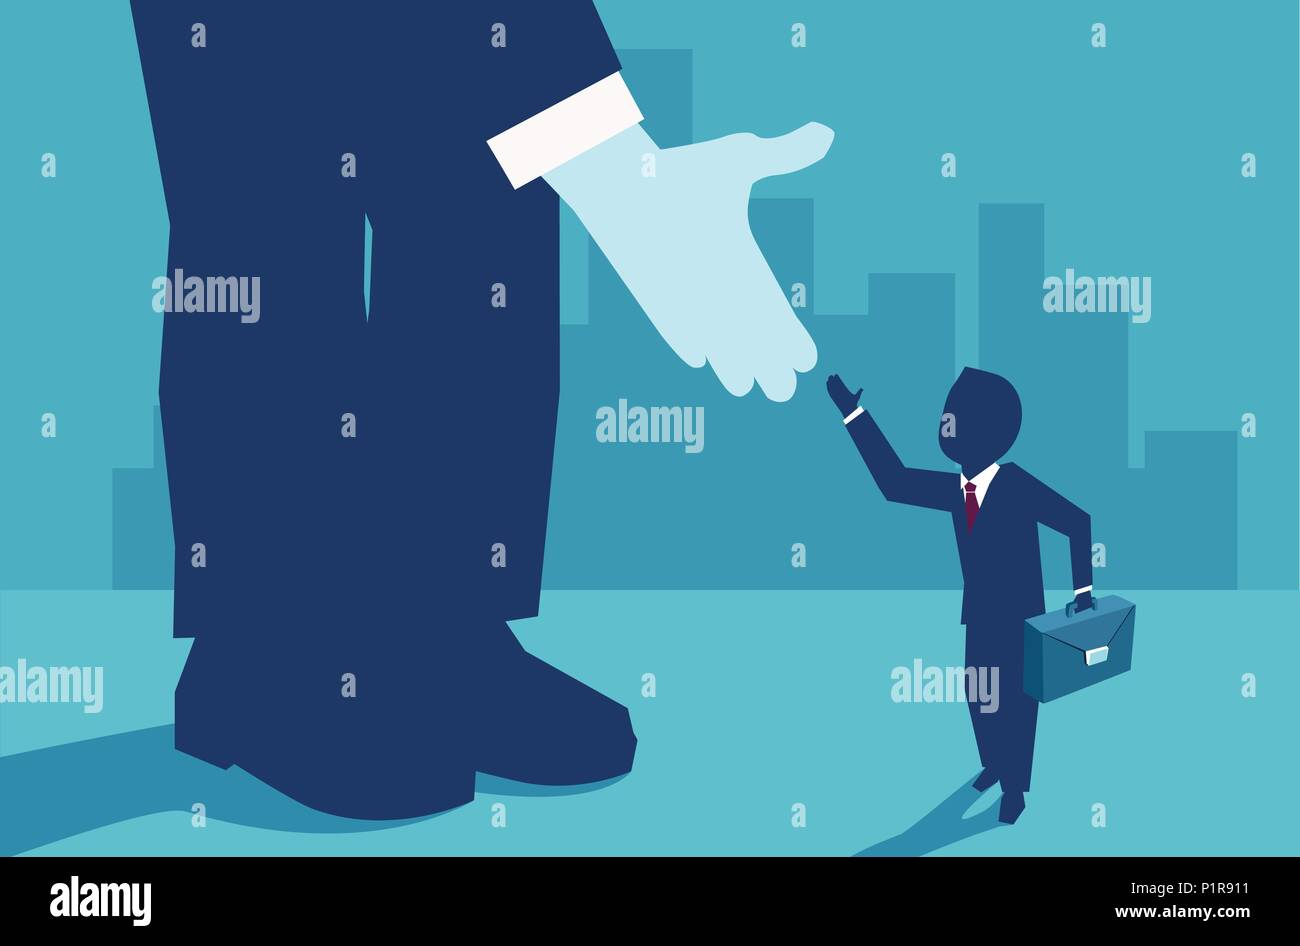 Vector picture of small businessman supported by unknown investor giving him opportunity. - Stock Vector